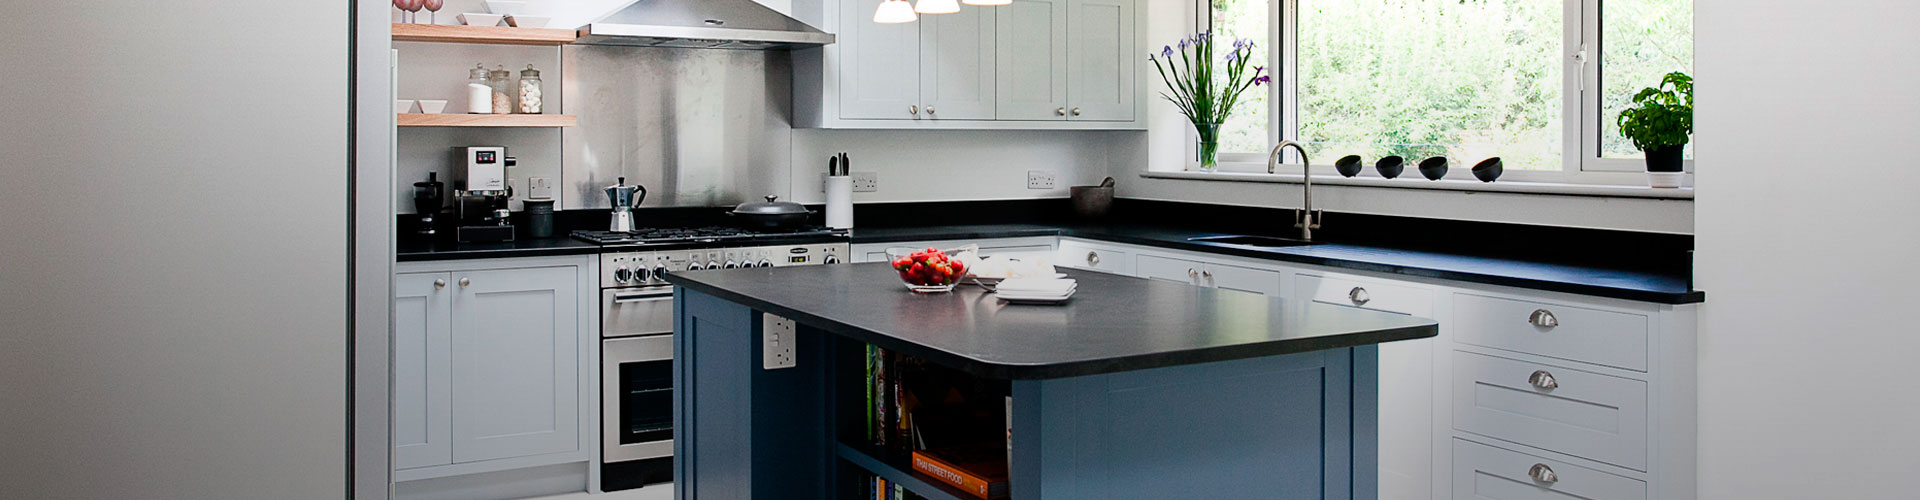 Uncategorized Kitchen Appliances Columbus Ohio bluestar cooking ranges central ohio appliance repair family owned and operated business since 1975